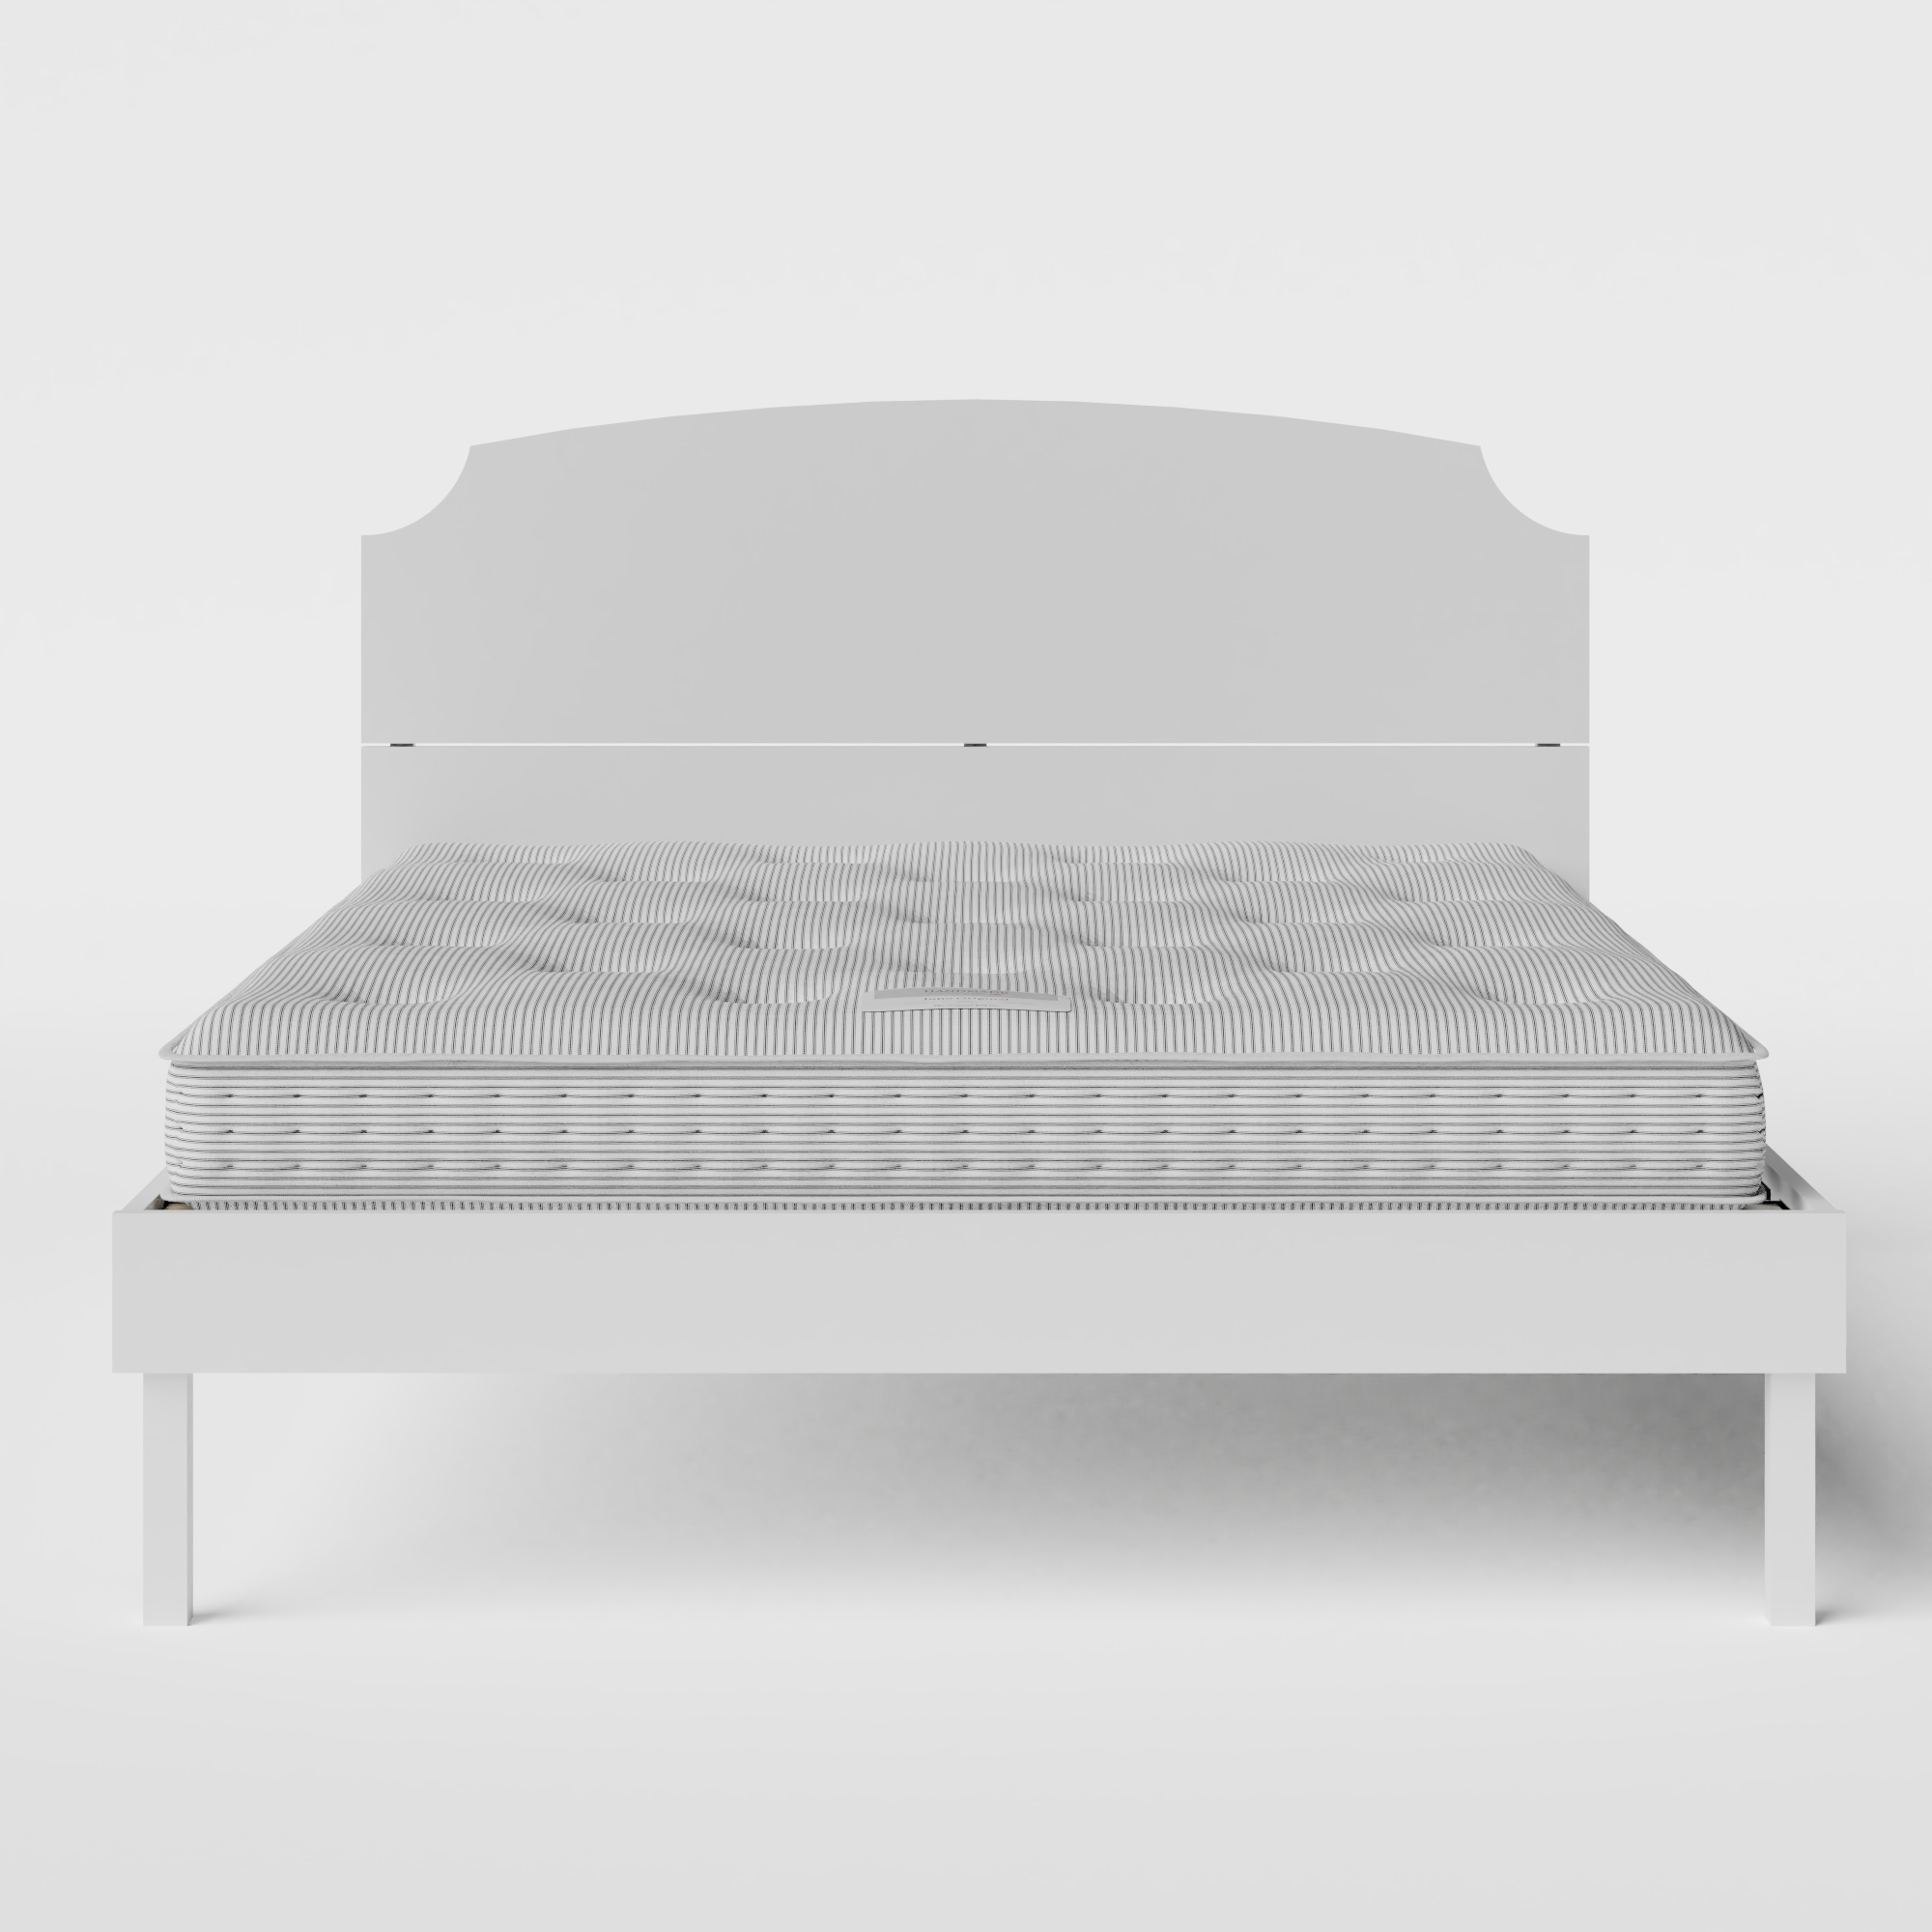 Kobe Painted painted wood bed in white with Juno mattress